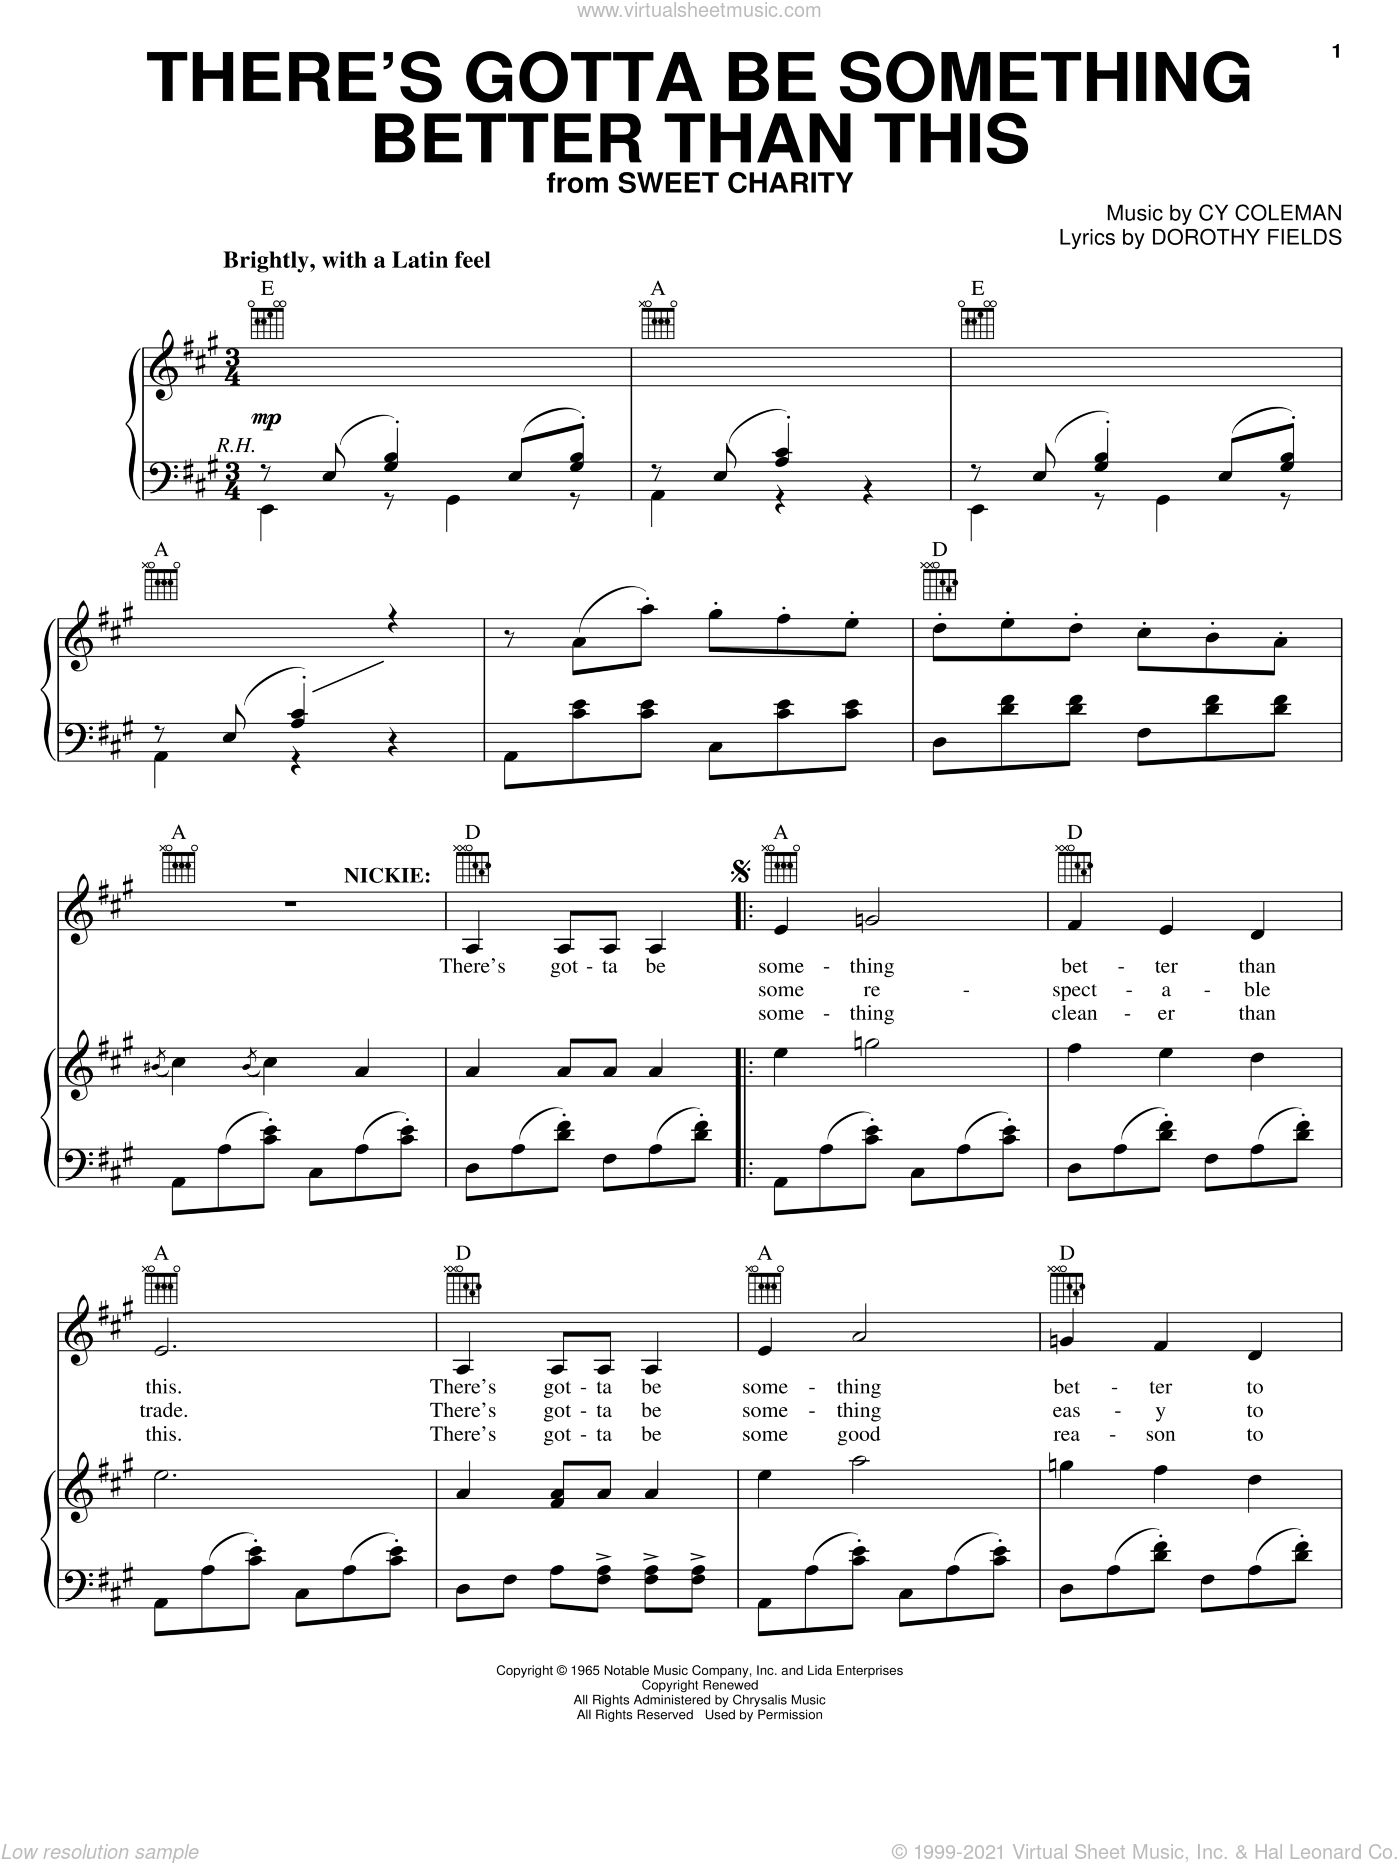 There's Gotta Be Something Better Than This sheet music for voice, piano or guitar by Cy Coleman, Sweet Charity (Musical) and Dorothy Fields, intermediate skill level